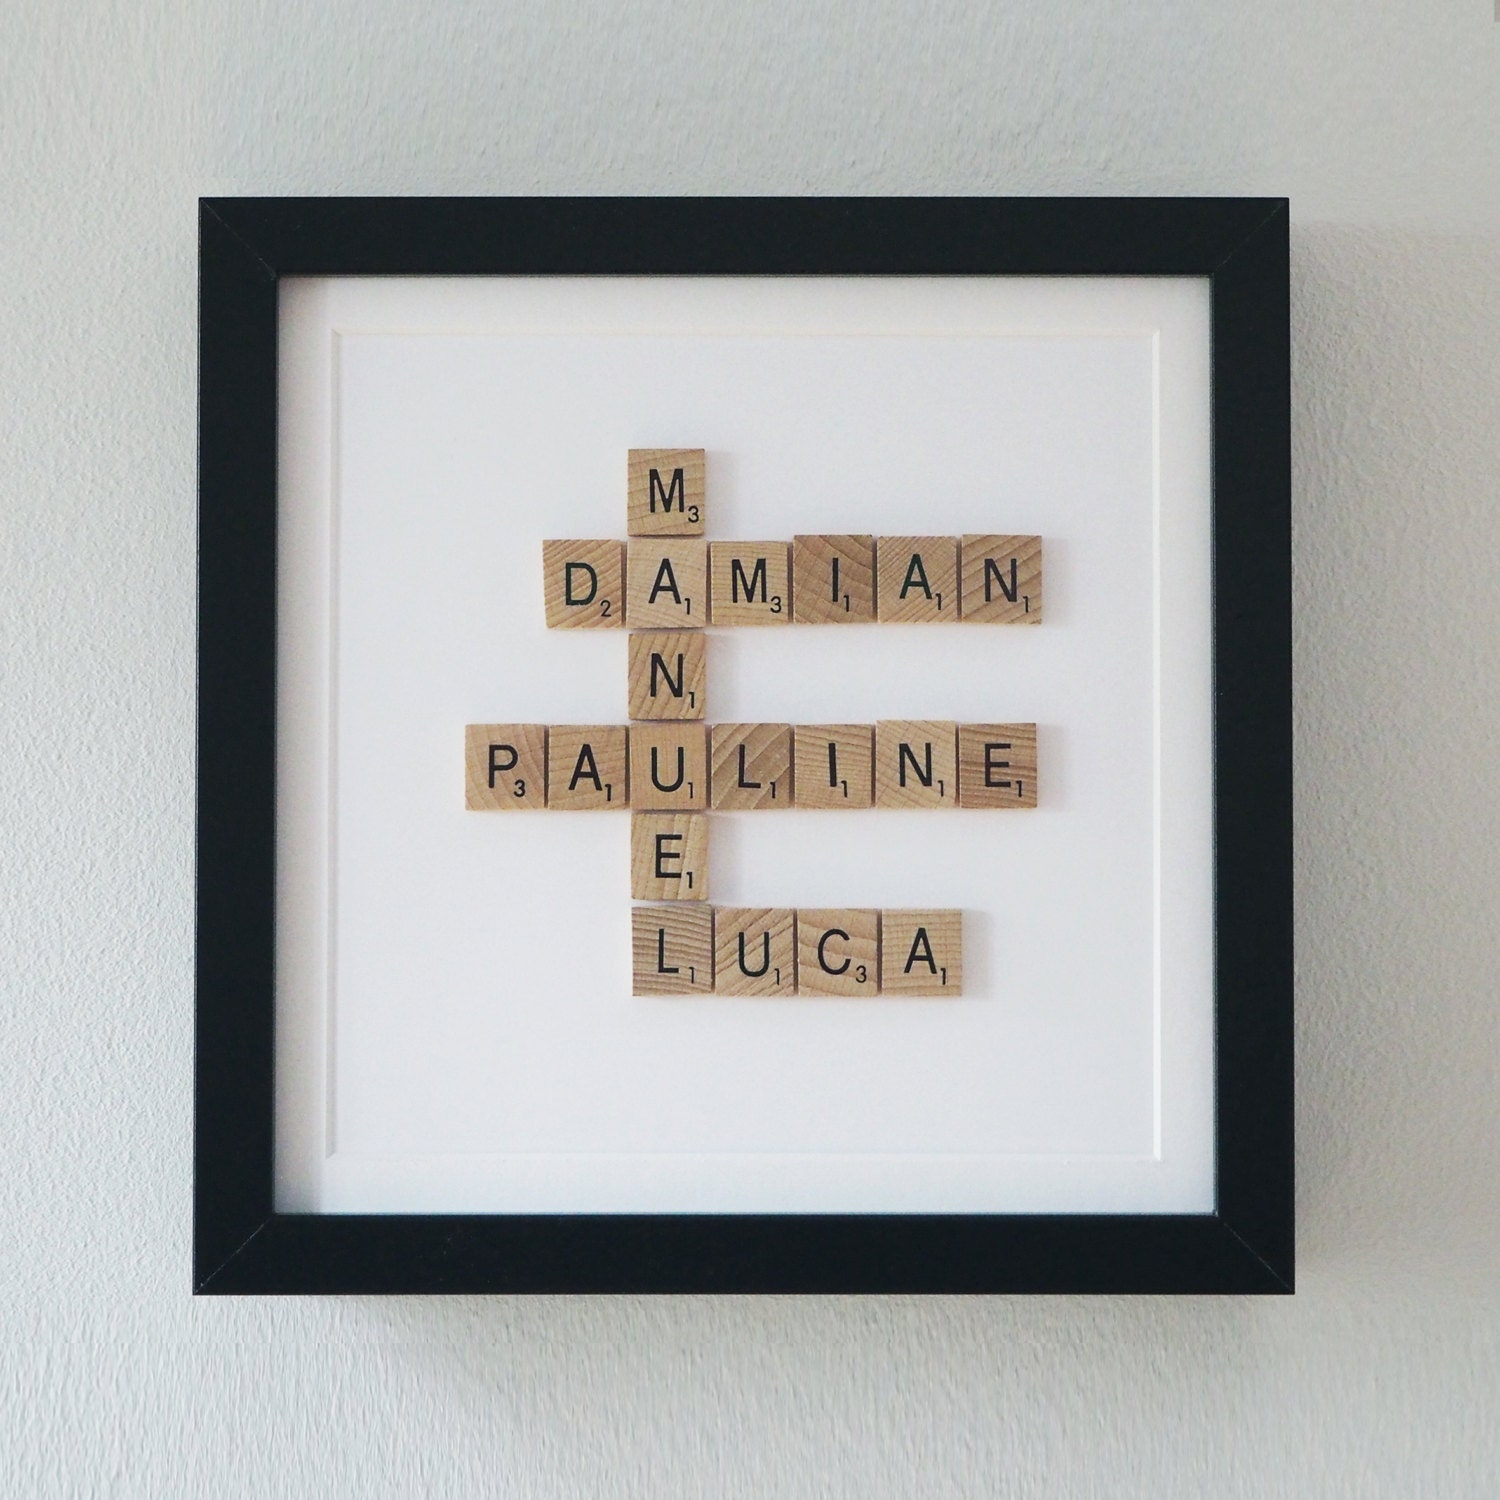 Framed Scrabble Family Tree 5th year anniversary gift wooden